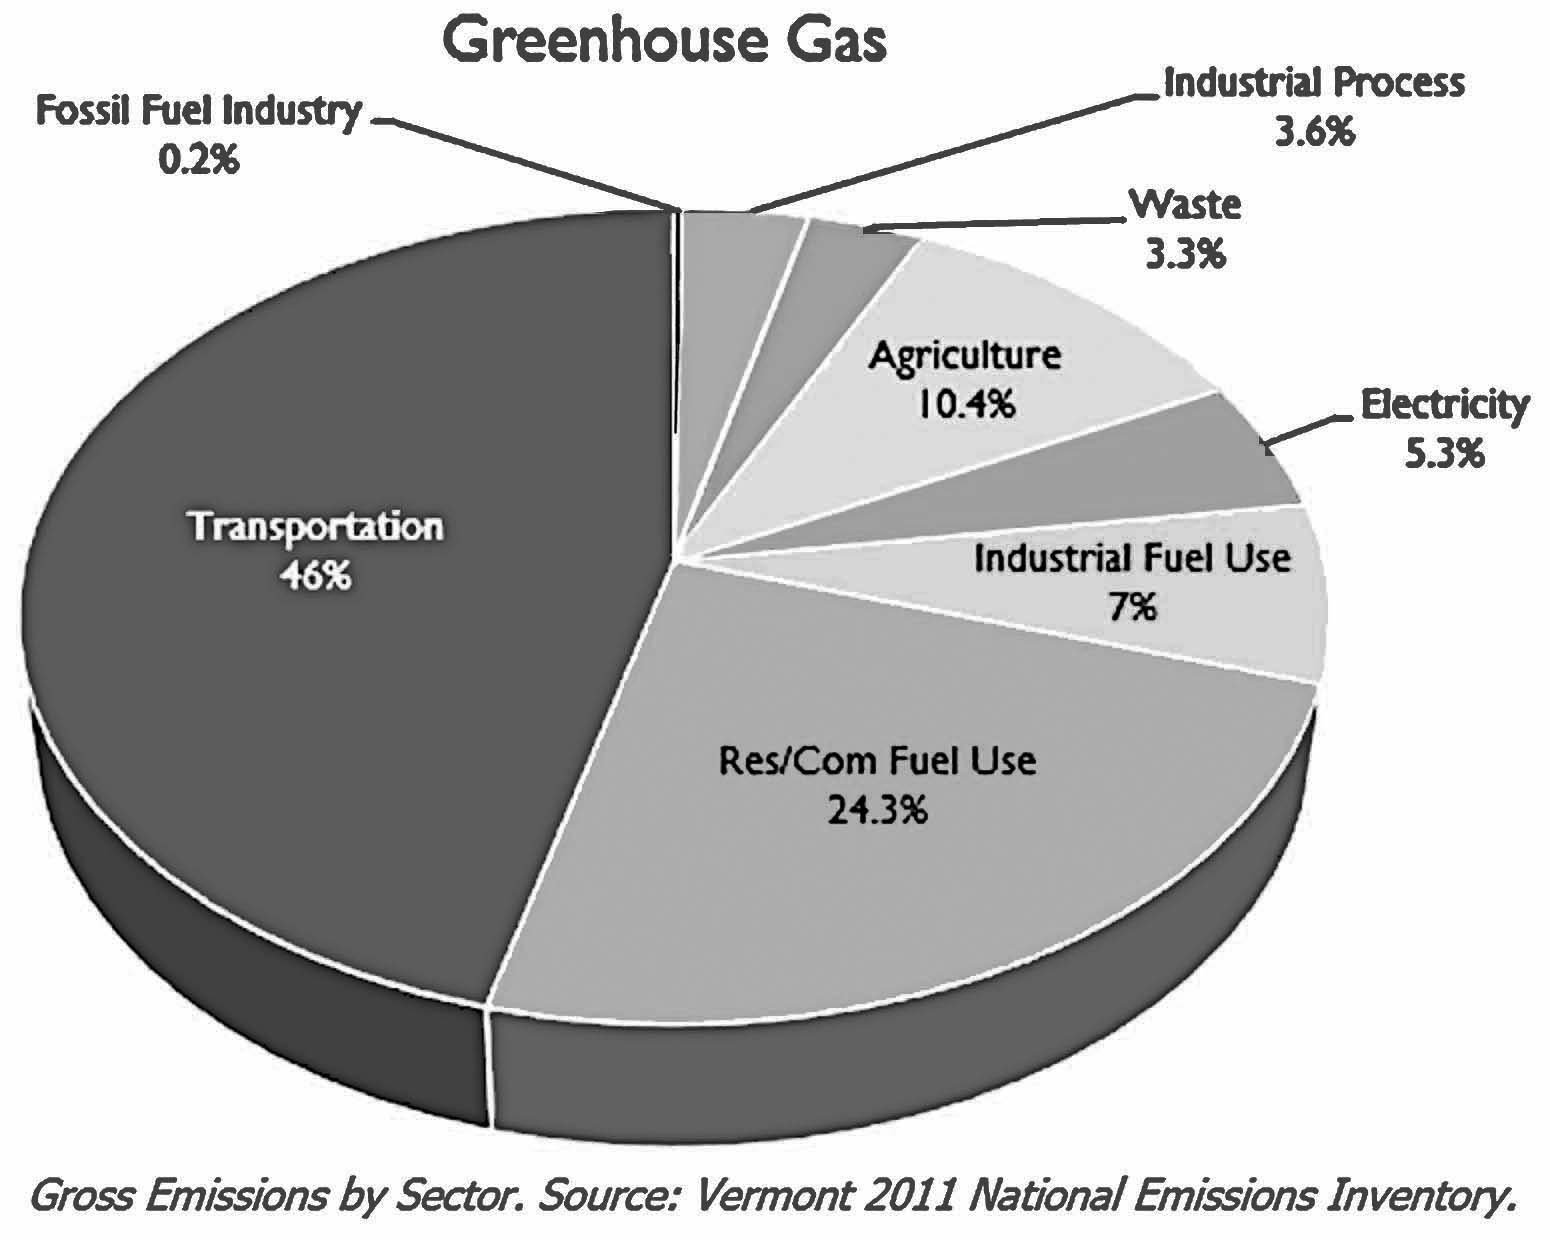 VT Gas Emissions by Sector VT 2011 National Emissions Inventory_VN